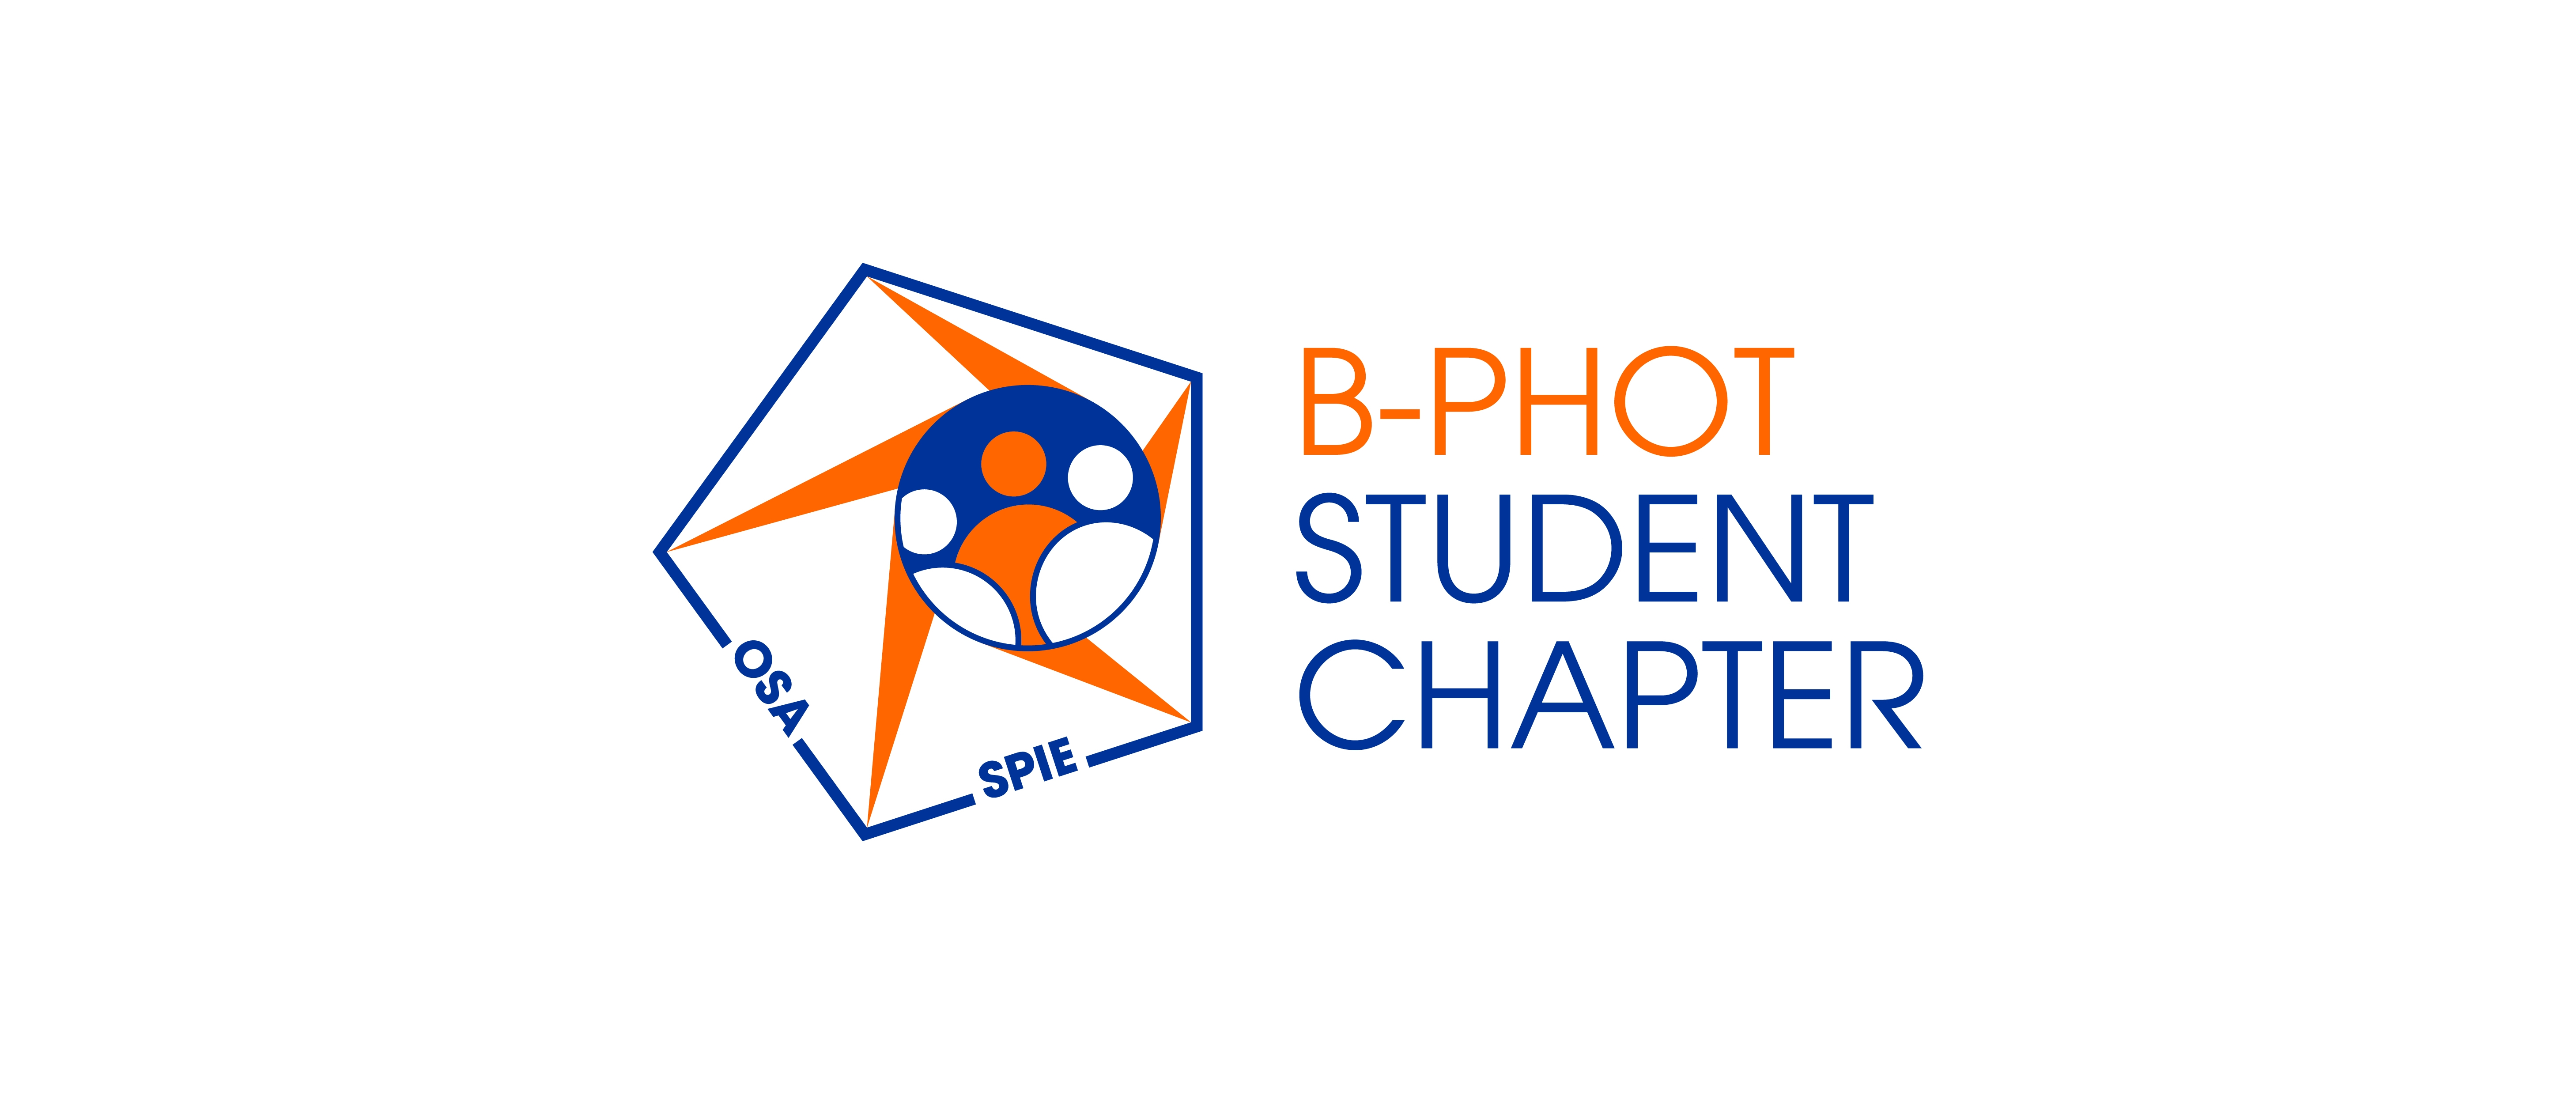 B-PHOT Student Chapter logo